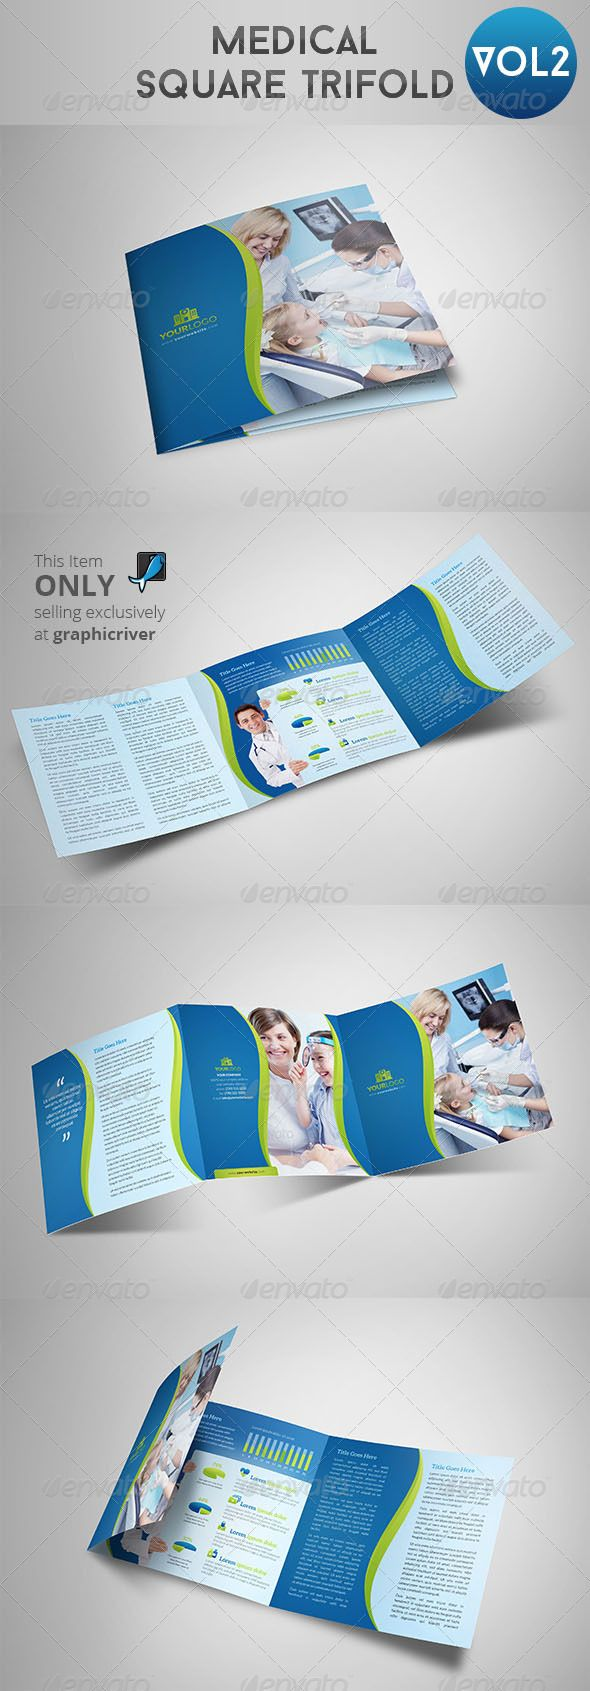 Medical Square Trifold 2 — shop PSD square corporate • Available here → square trifold 2 ref=pxcr